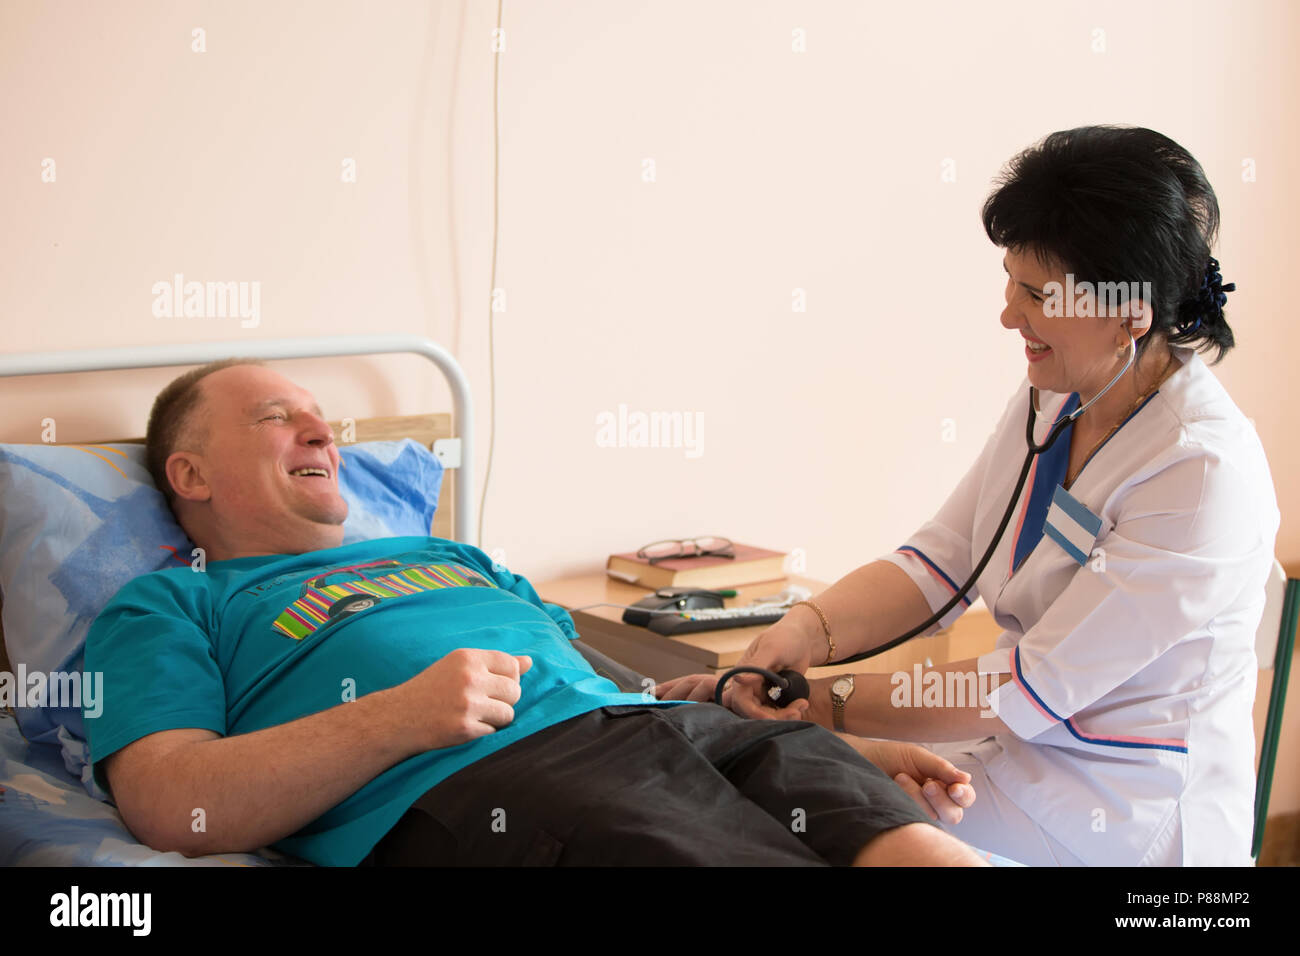 Belarus, Gomel, 24 April 2018. The Gomel Central Hospital.The doctor measures the pressure on the patient - Stock Image